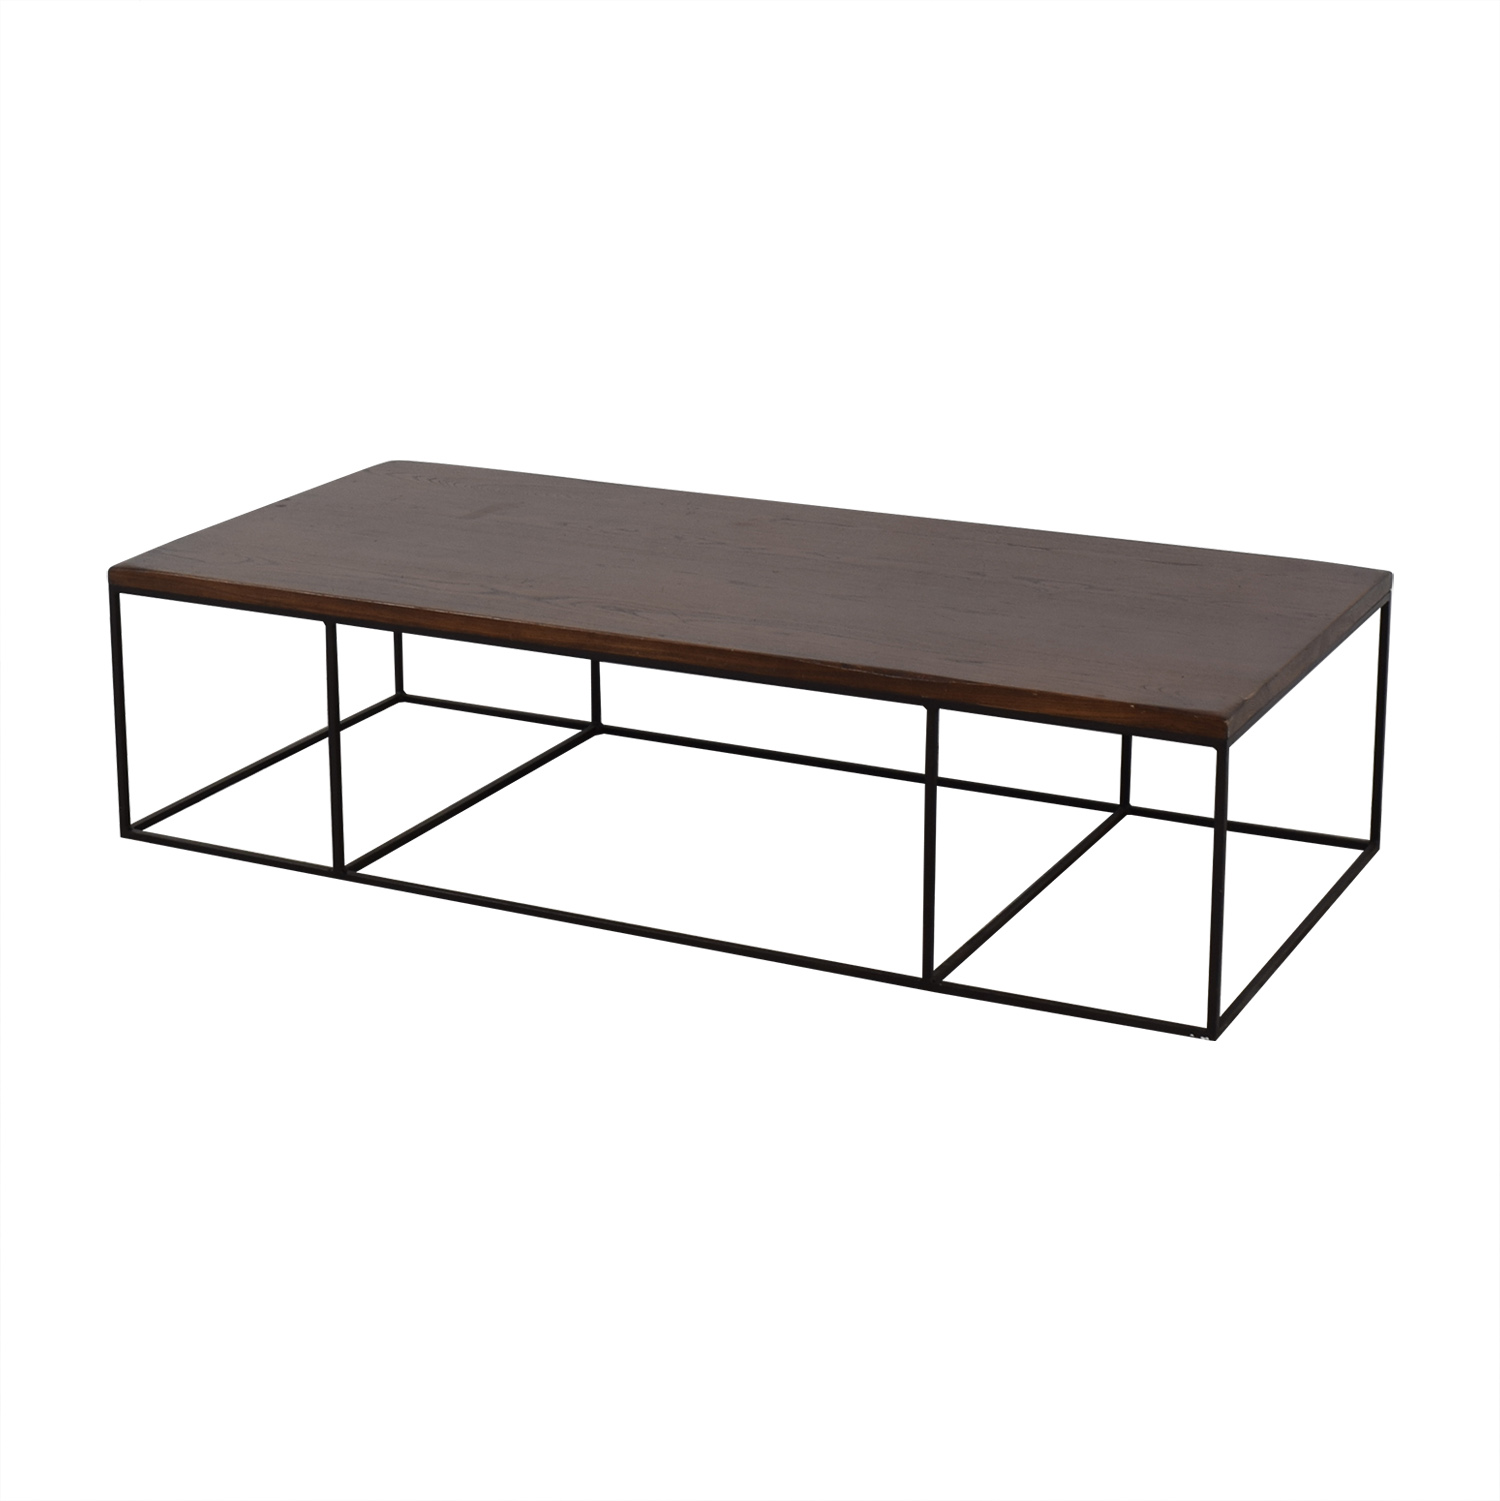 Restoration Hardware Restoration Hardware Coffee Table